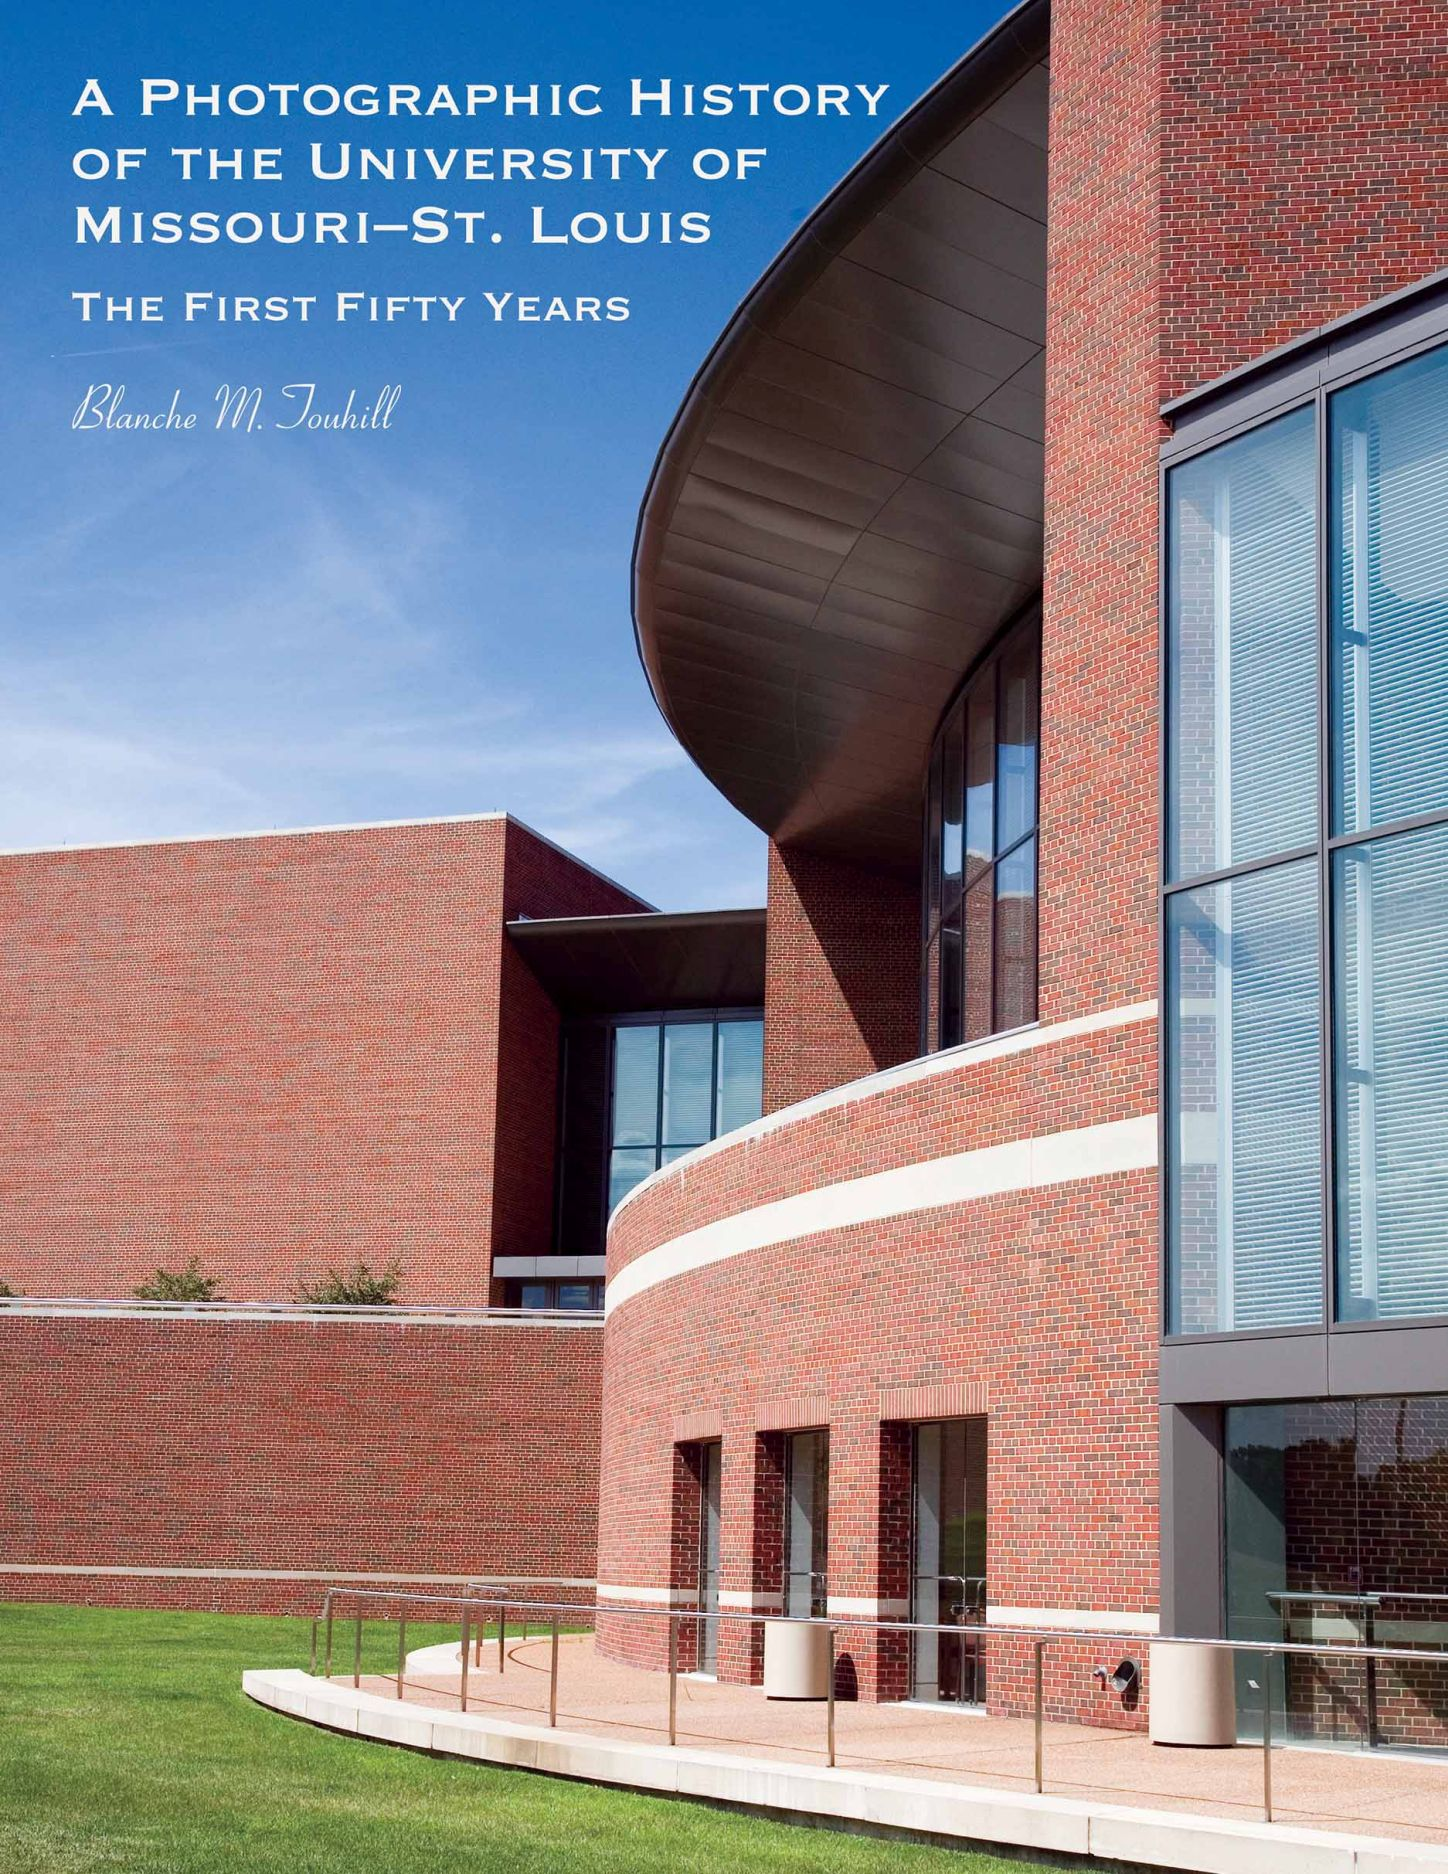 A Photographic History of the University of Missouri--St. Louis